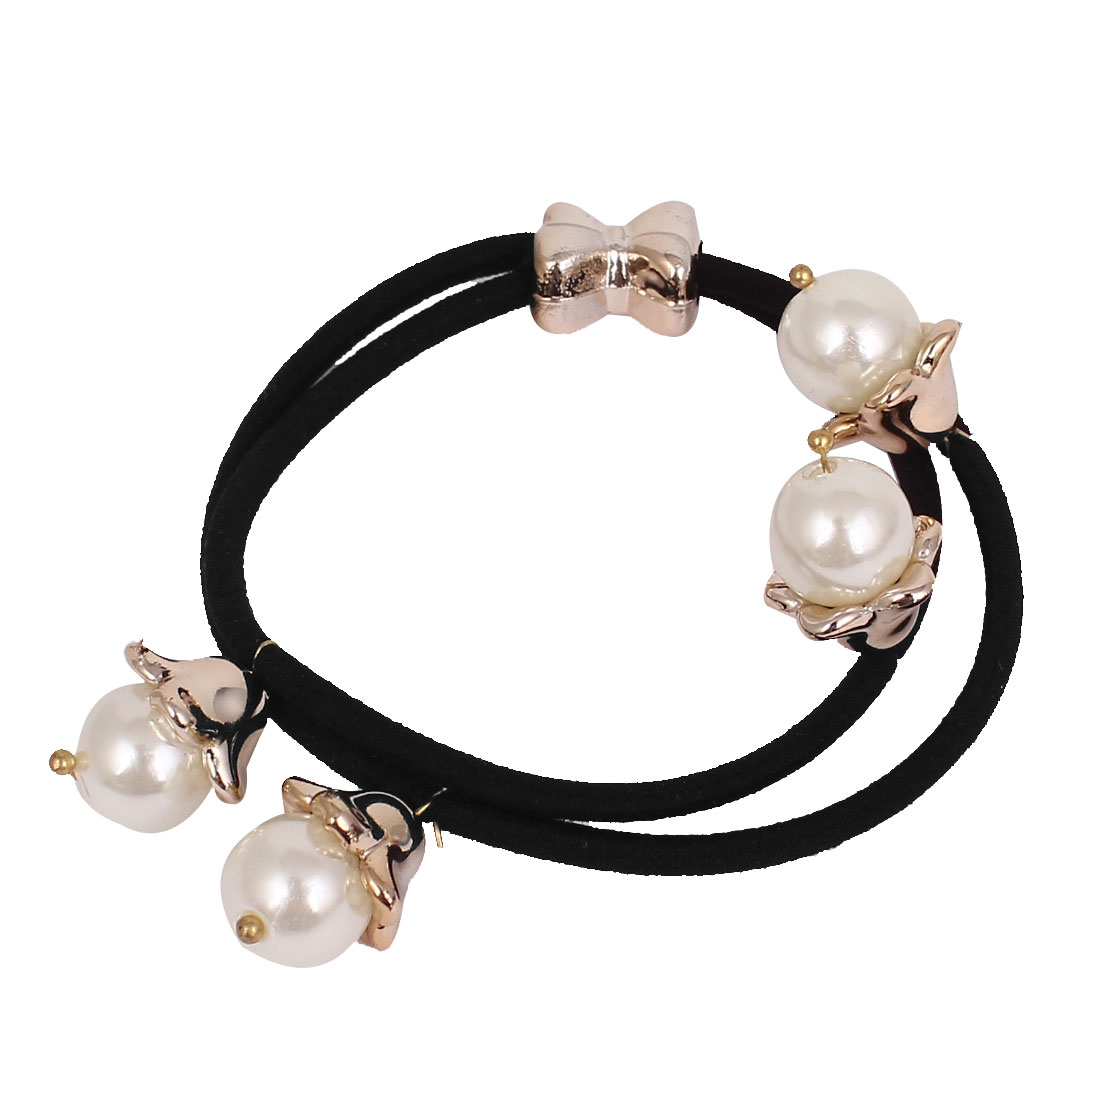 Black White Imitation Pearl Flower Bowknot Ornament Elastic Band Ponytail Holder for Woman